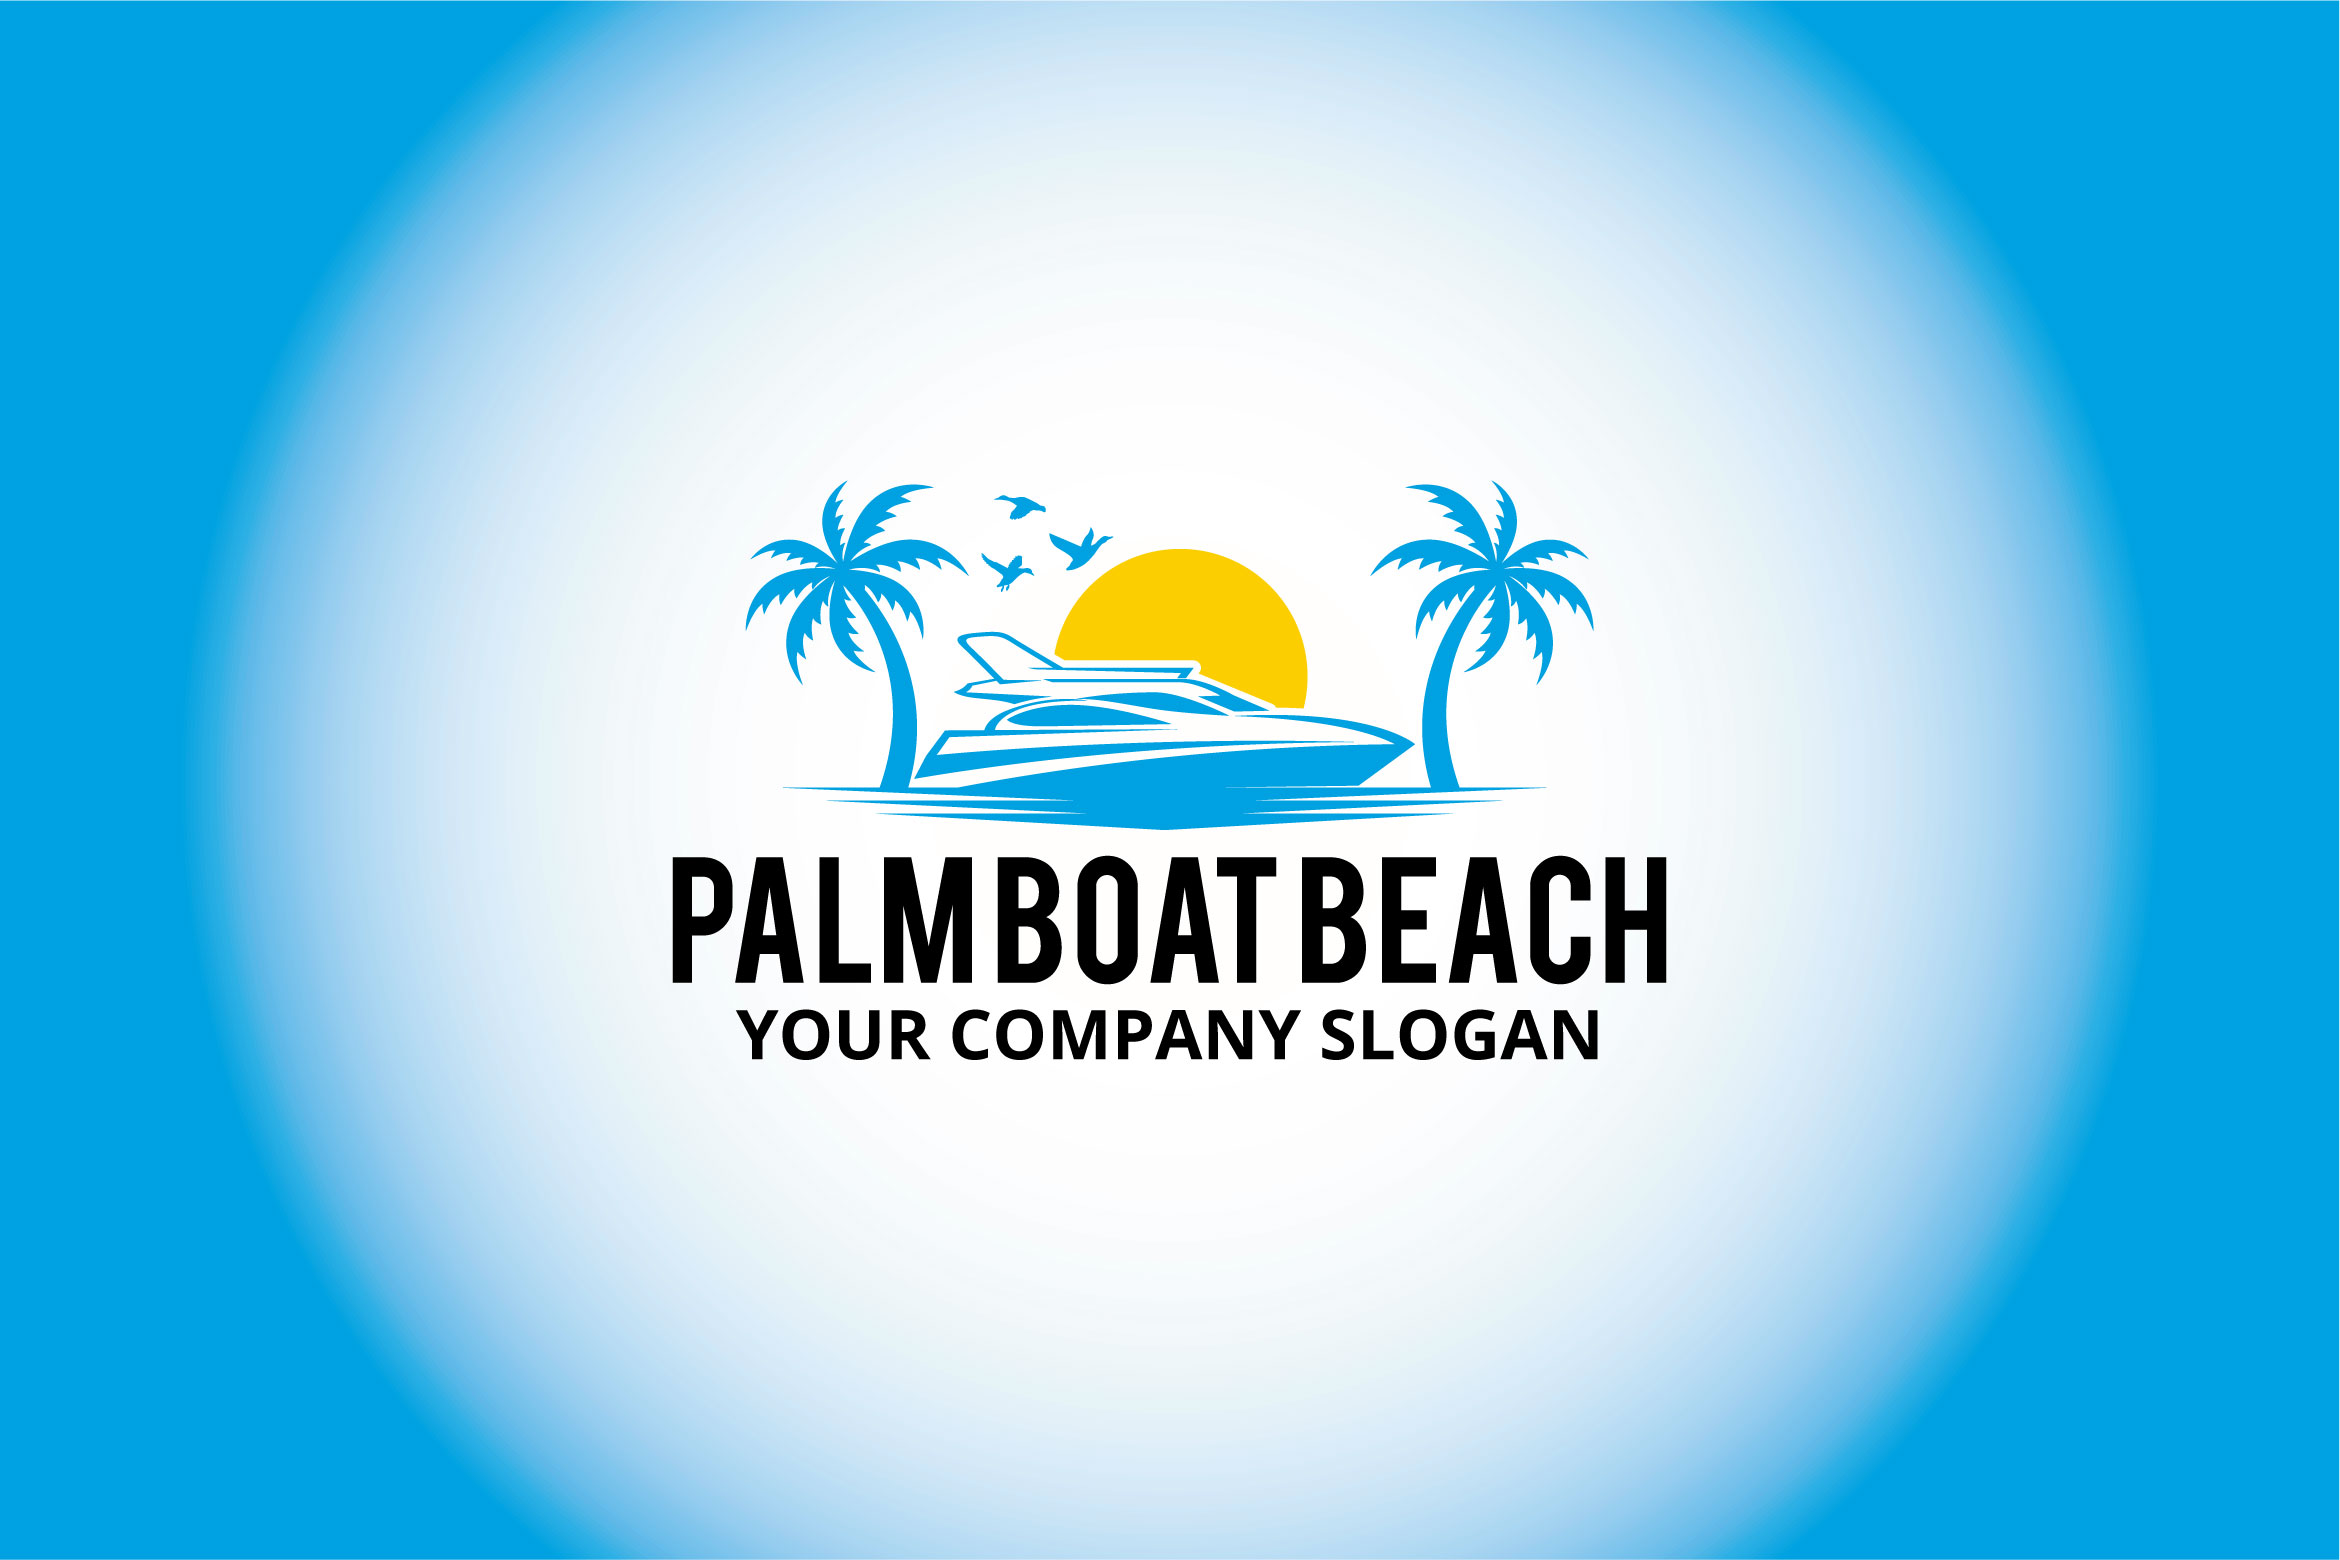 palm boat beach logo example image 1